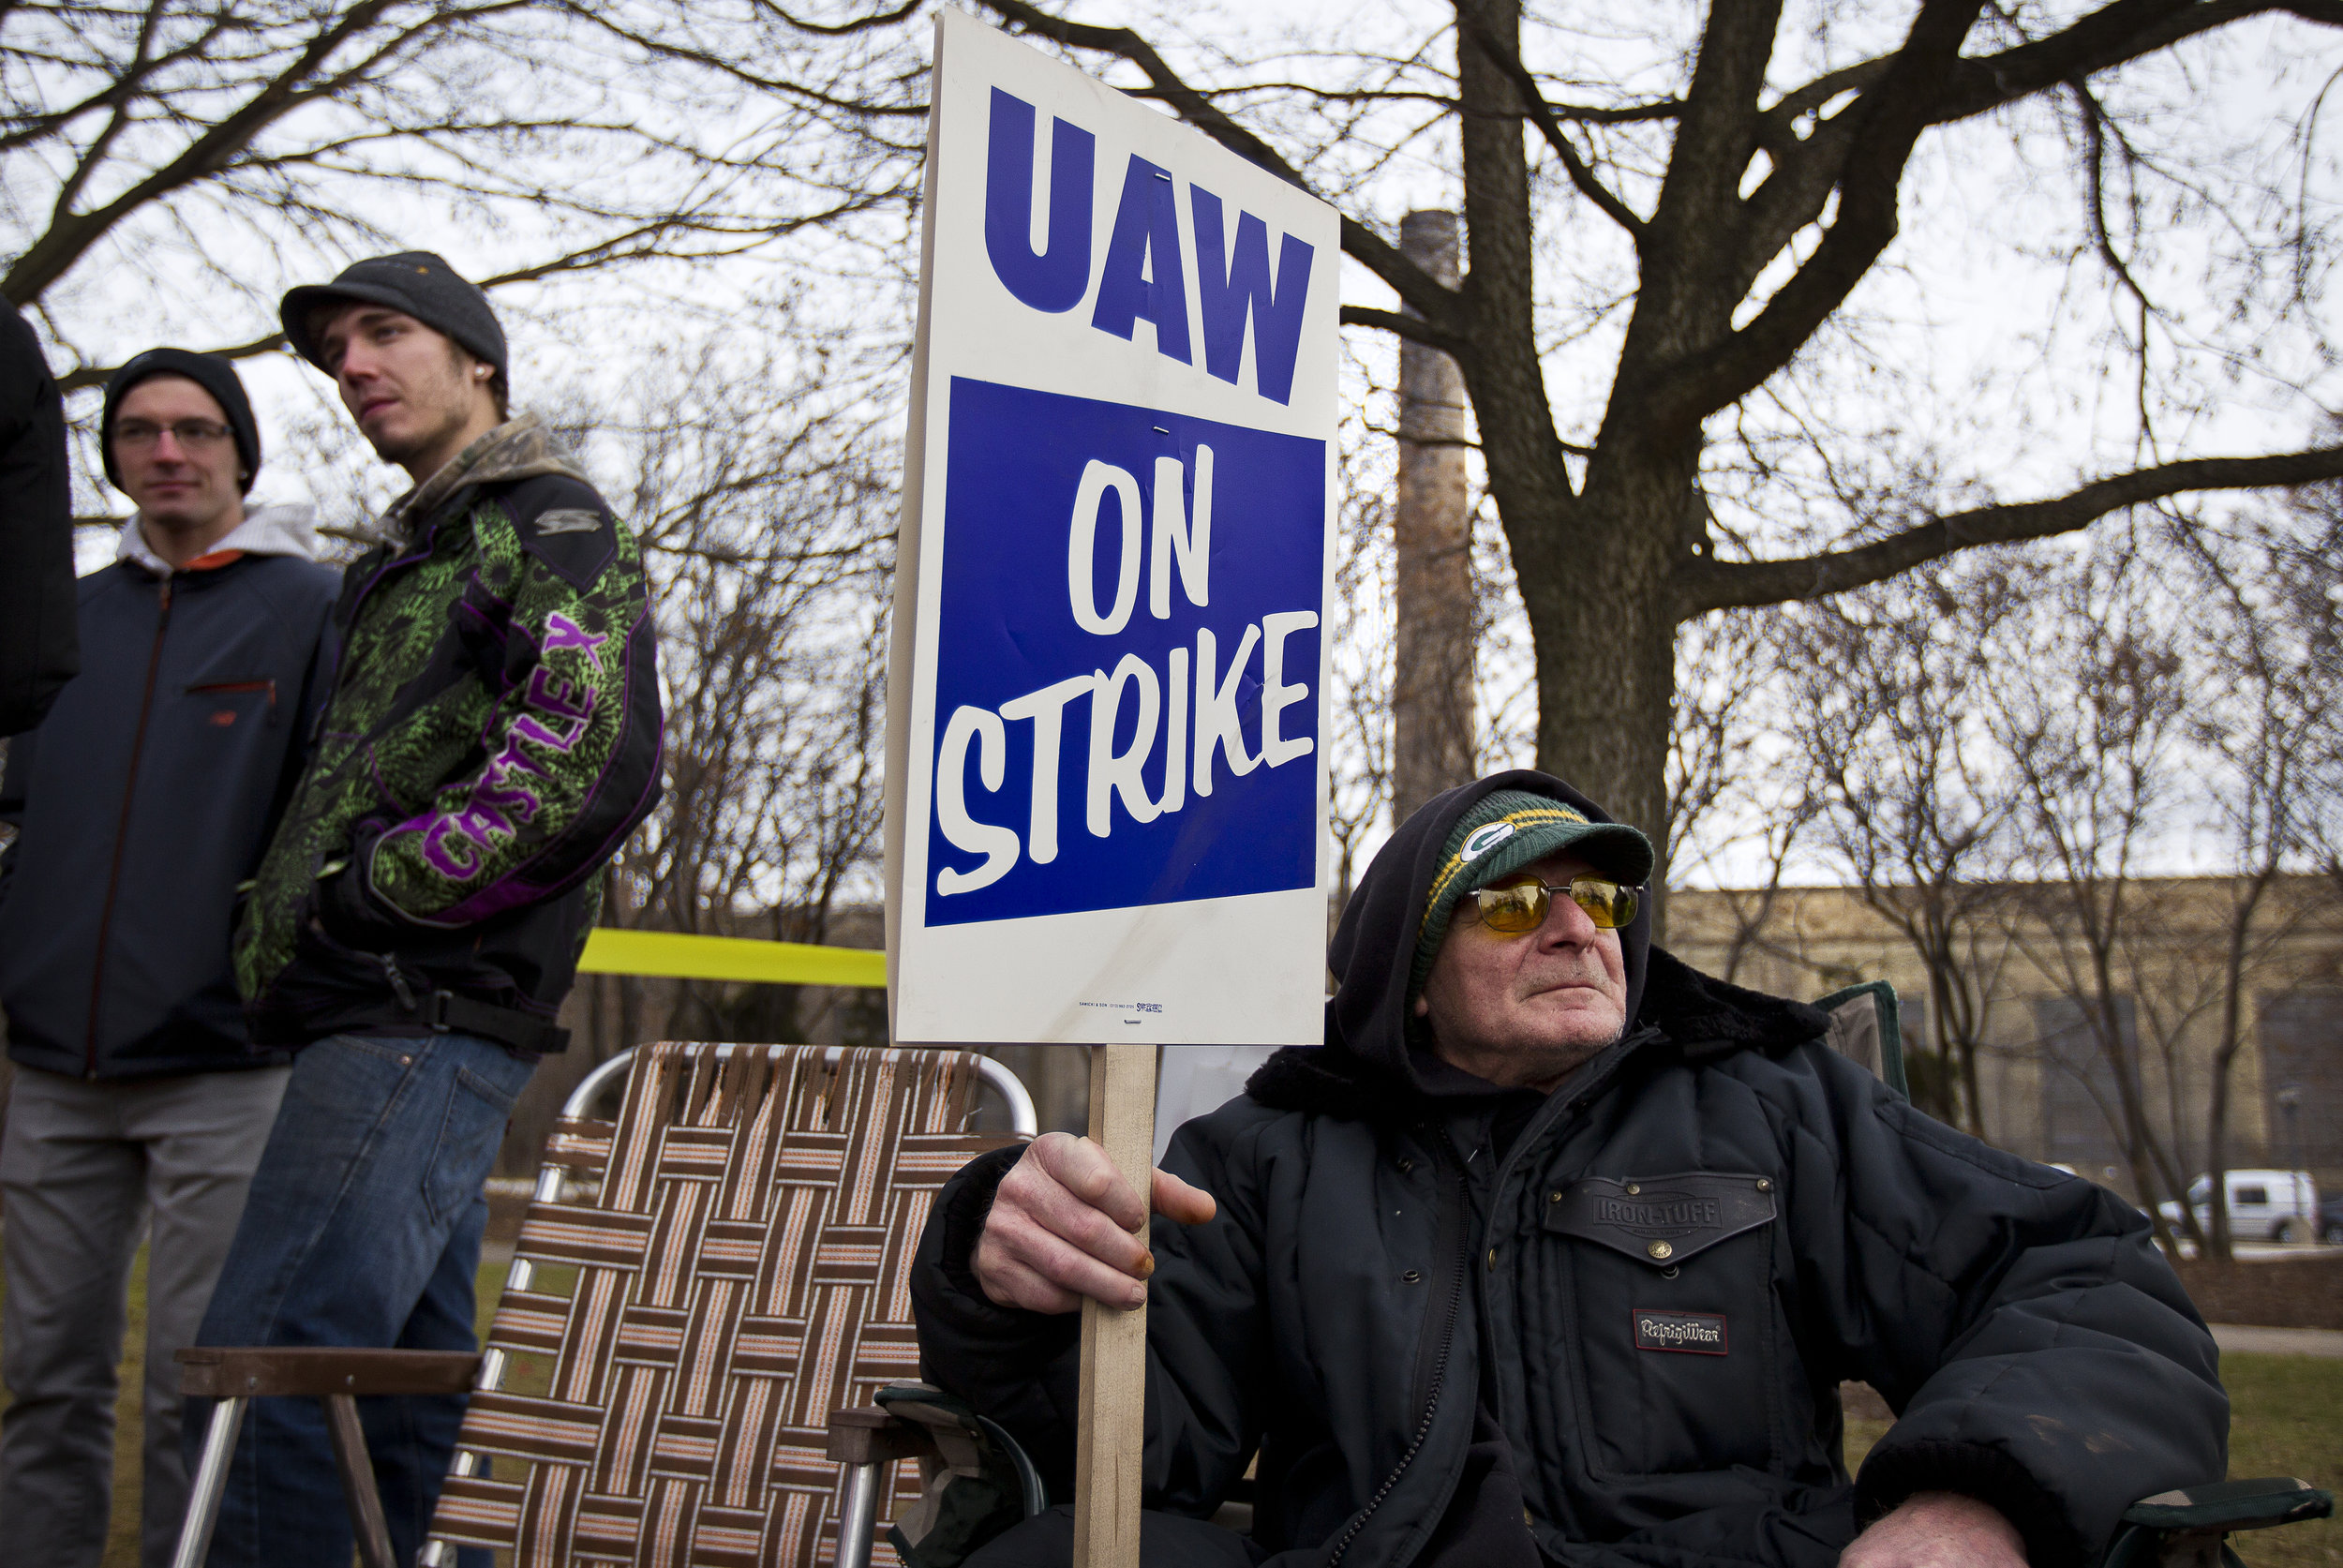 KOHLER, WI — DECEMBER 9, 2015: Dale Mand, a Kohler employee of 43 years in the Engine plant, looks on at other Local UAW 833 strikers outside the Kohler facility, Tuesday, December 8, 2015. Around 2,100 Kohler employees and union members are currently maintaining a 24/7 picket line outside the plant.